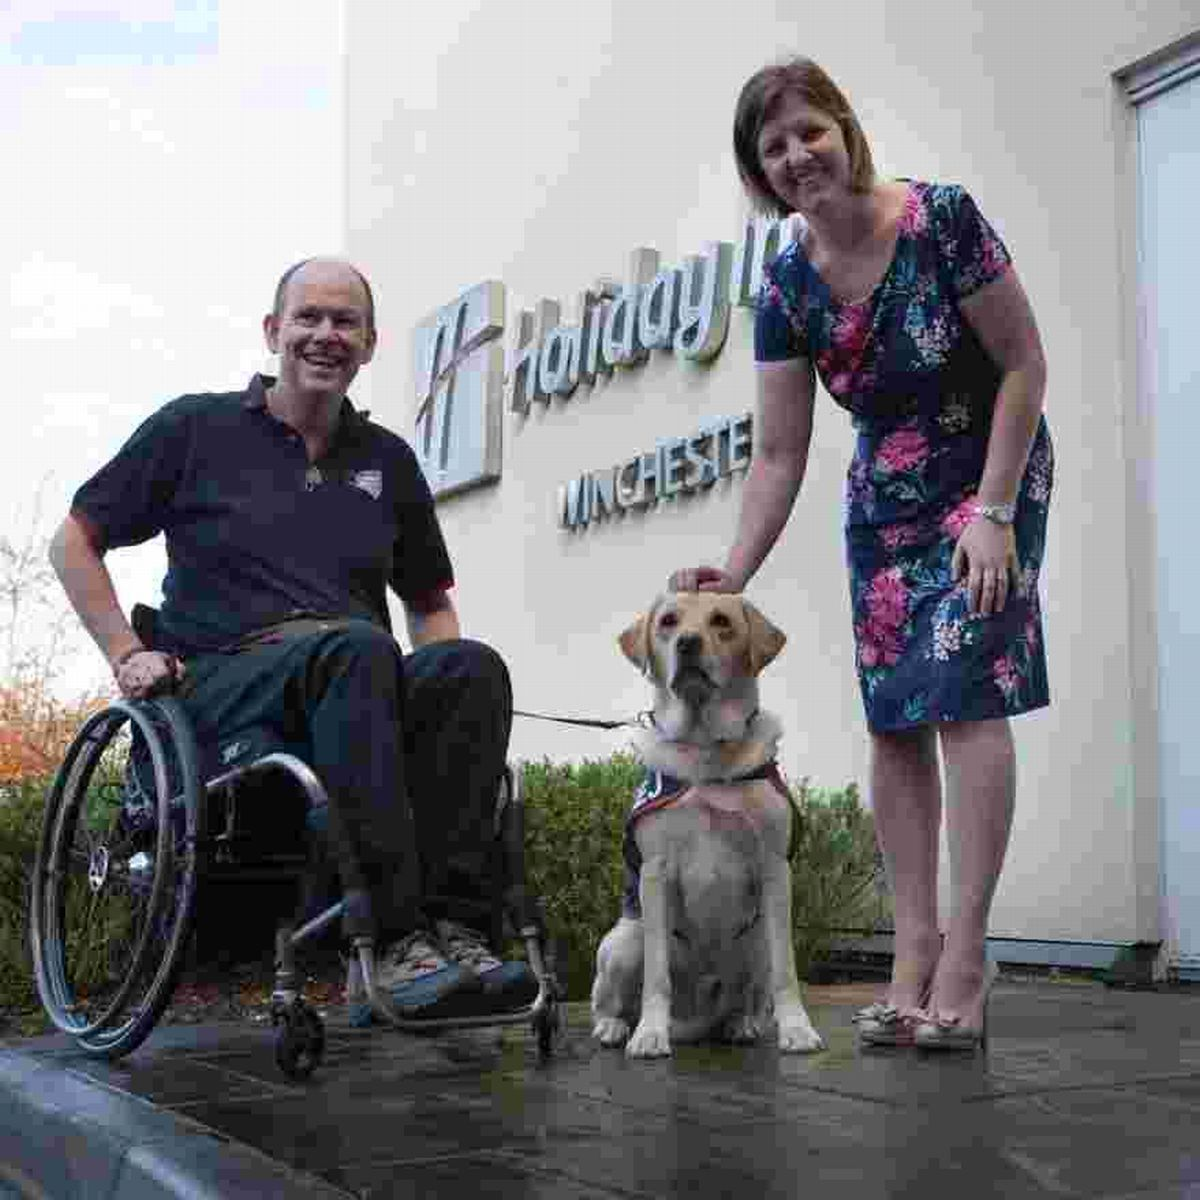 Allen Parton, Vice-Chairman and Founder of Hounds for Heroes and his dog, EJ, with Sarah Waddington, Holiday Inn Sales Manager